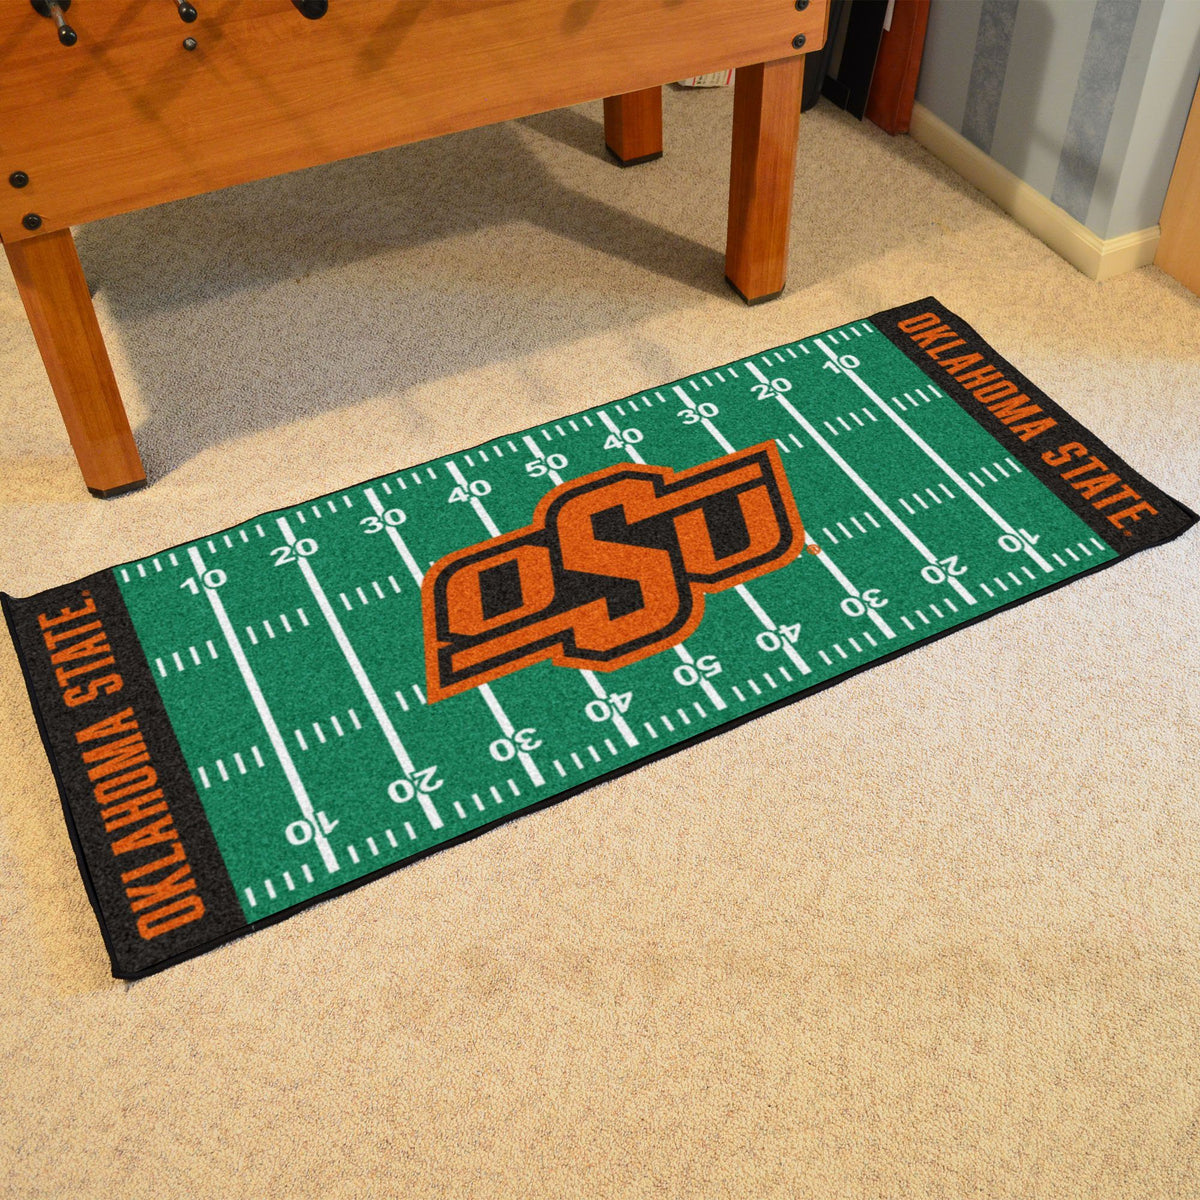 Collegiate - Football Field Runner Collegiate Mats, Rectangular Mats, Football Field Runner, Collegiate, Home Fan Mats Oklahoma State